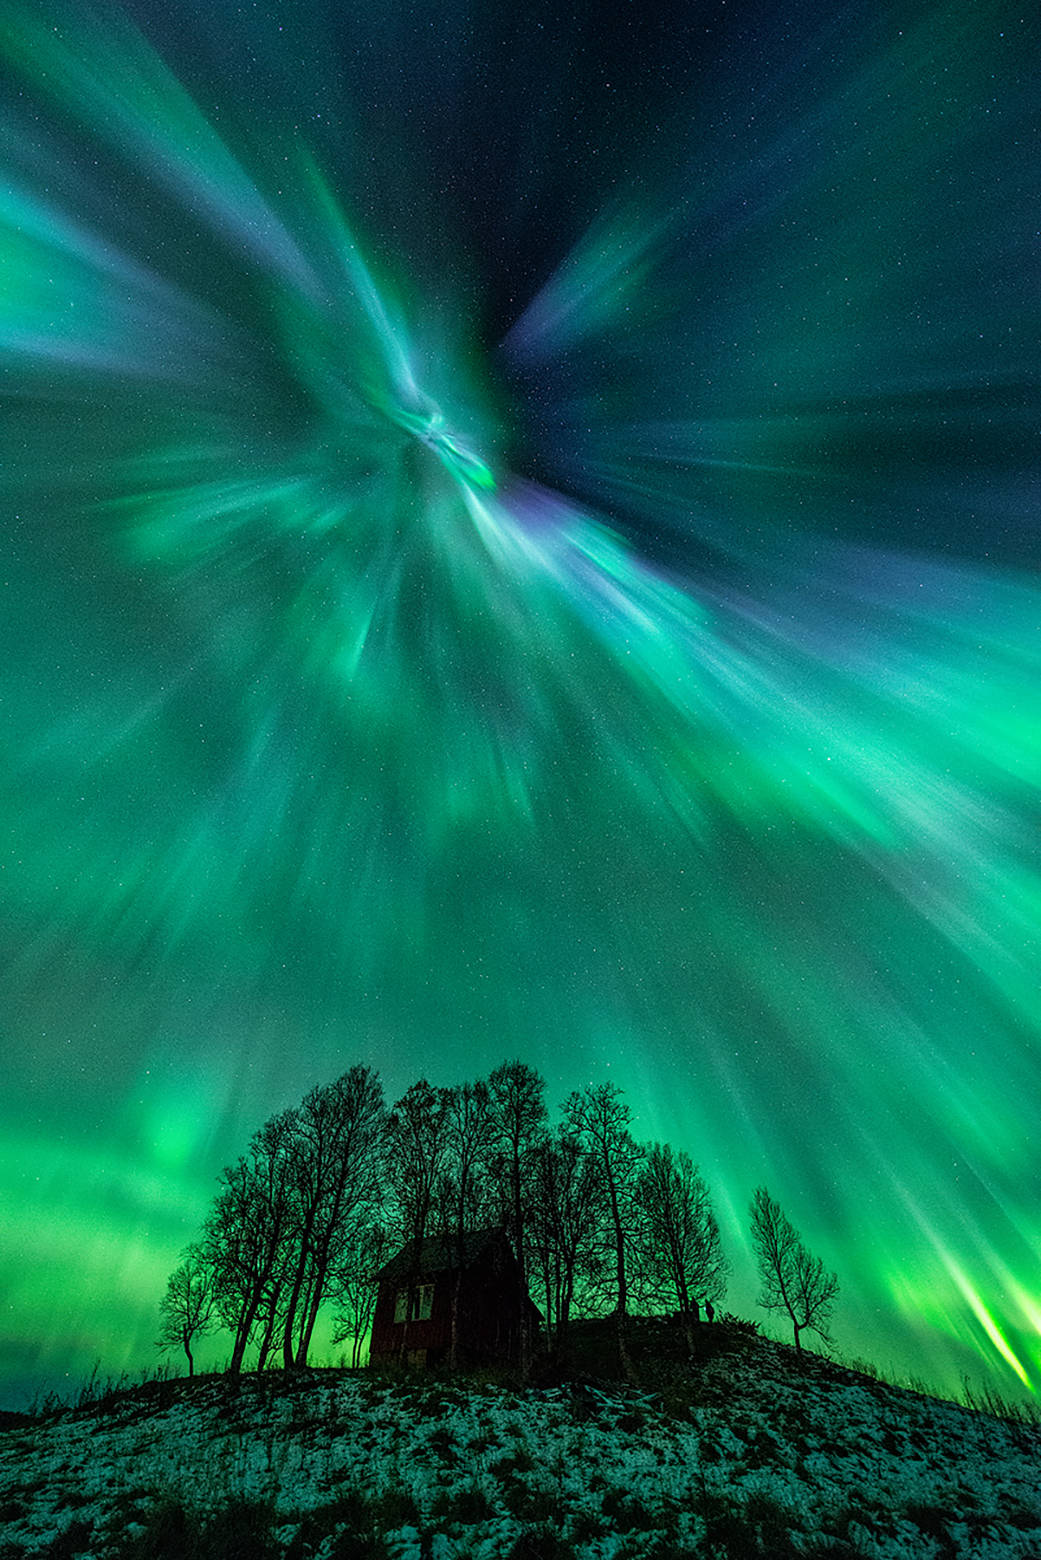 Fast Solar Wind Causes Aurora Light Shows